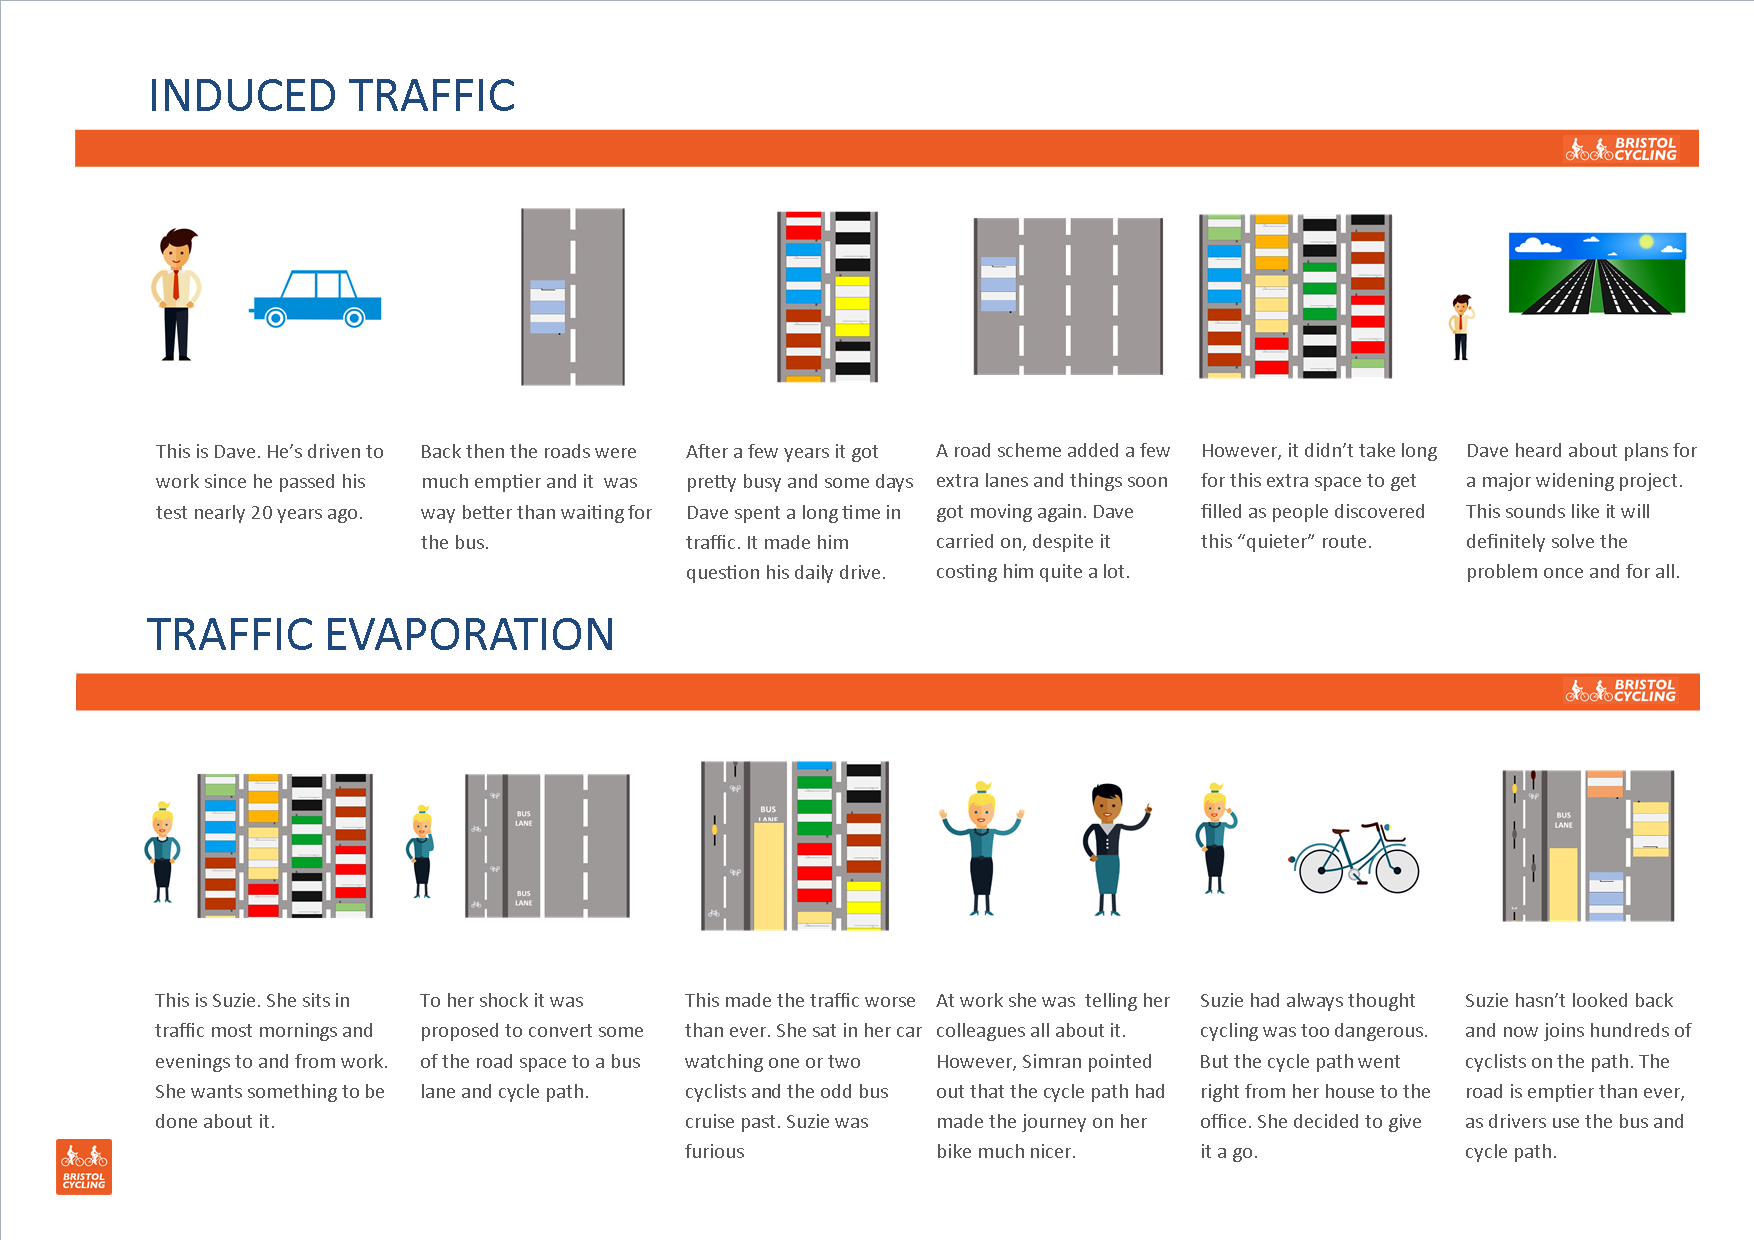 Induced Traffic and Traffic Evaporation